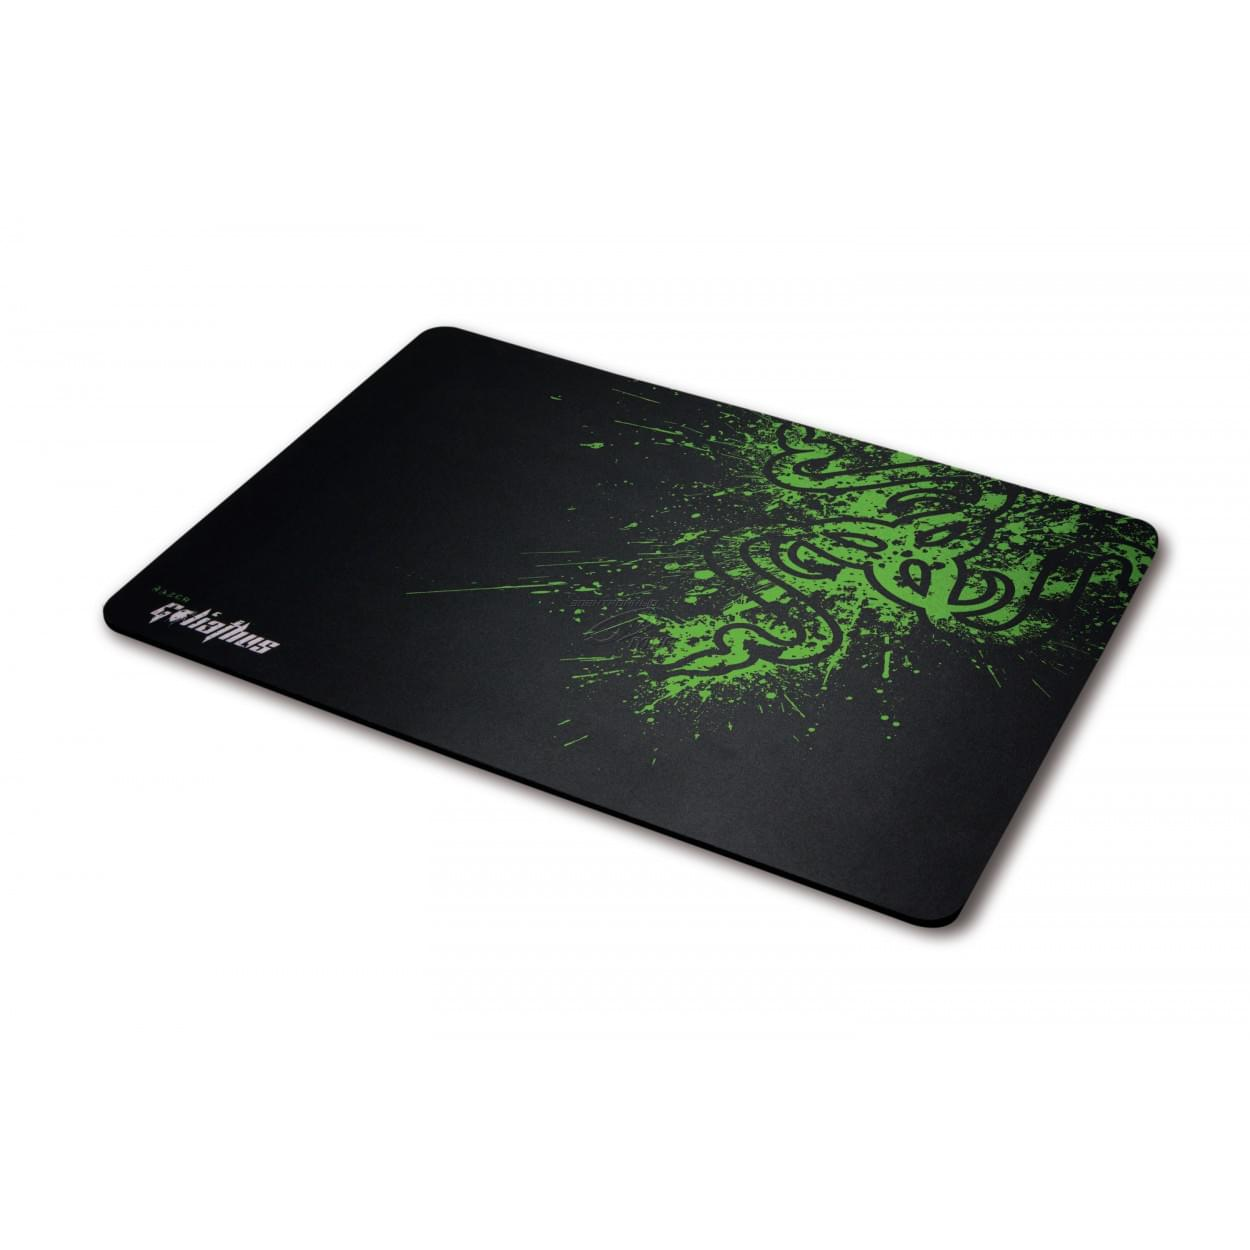 Razer Souris PC Tapis Goliathus Fragged speed Edition Taille S - 0